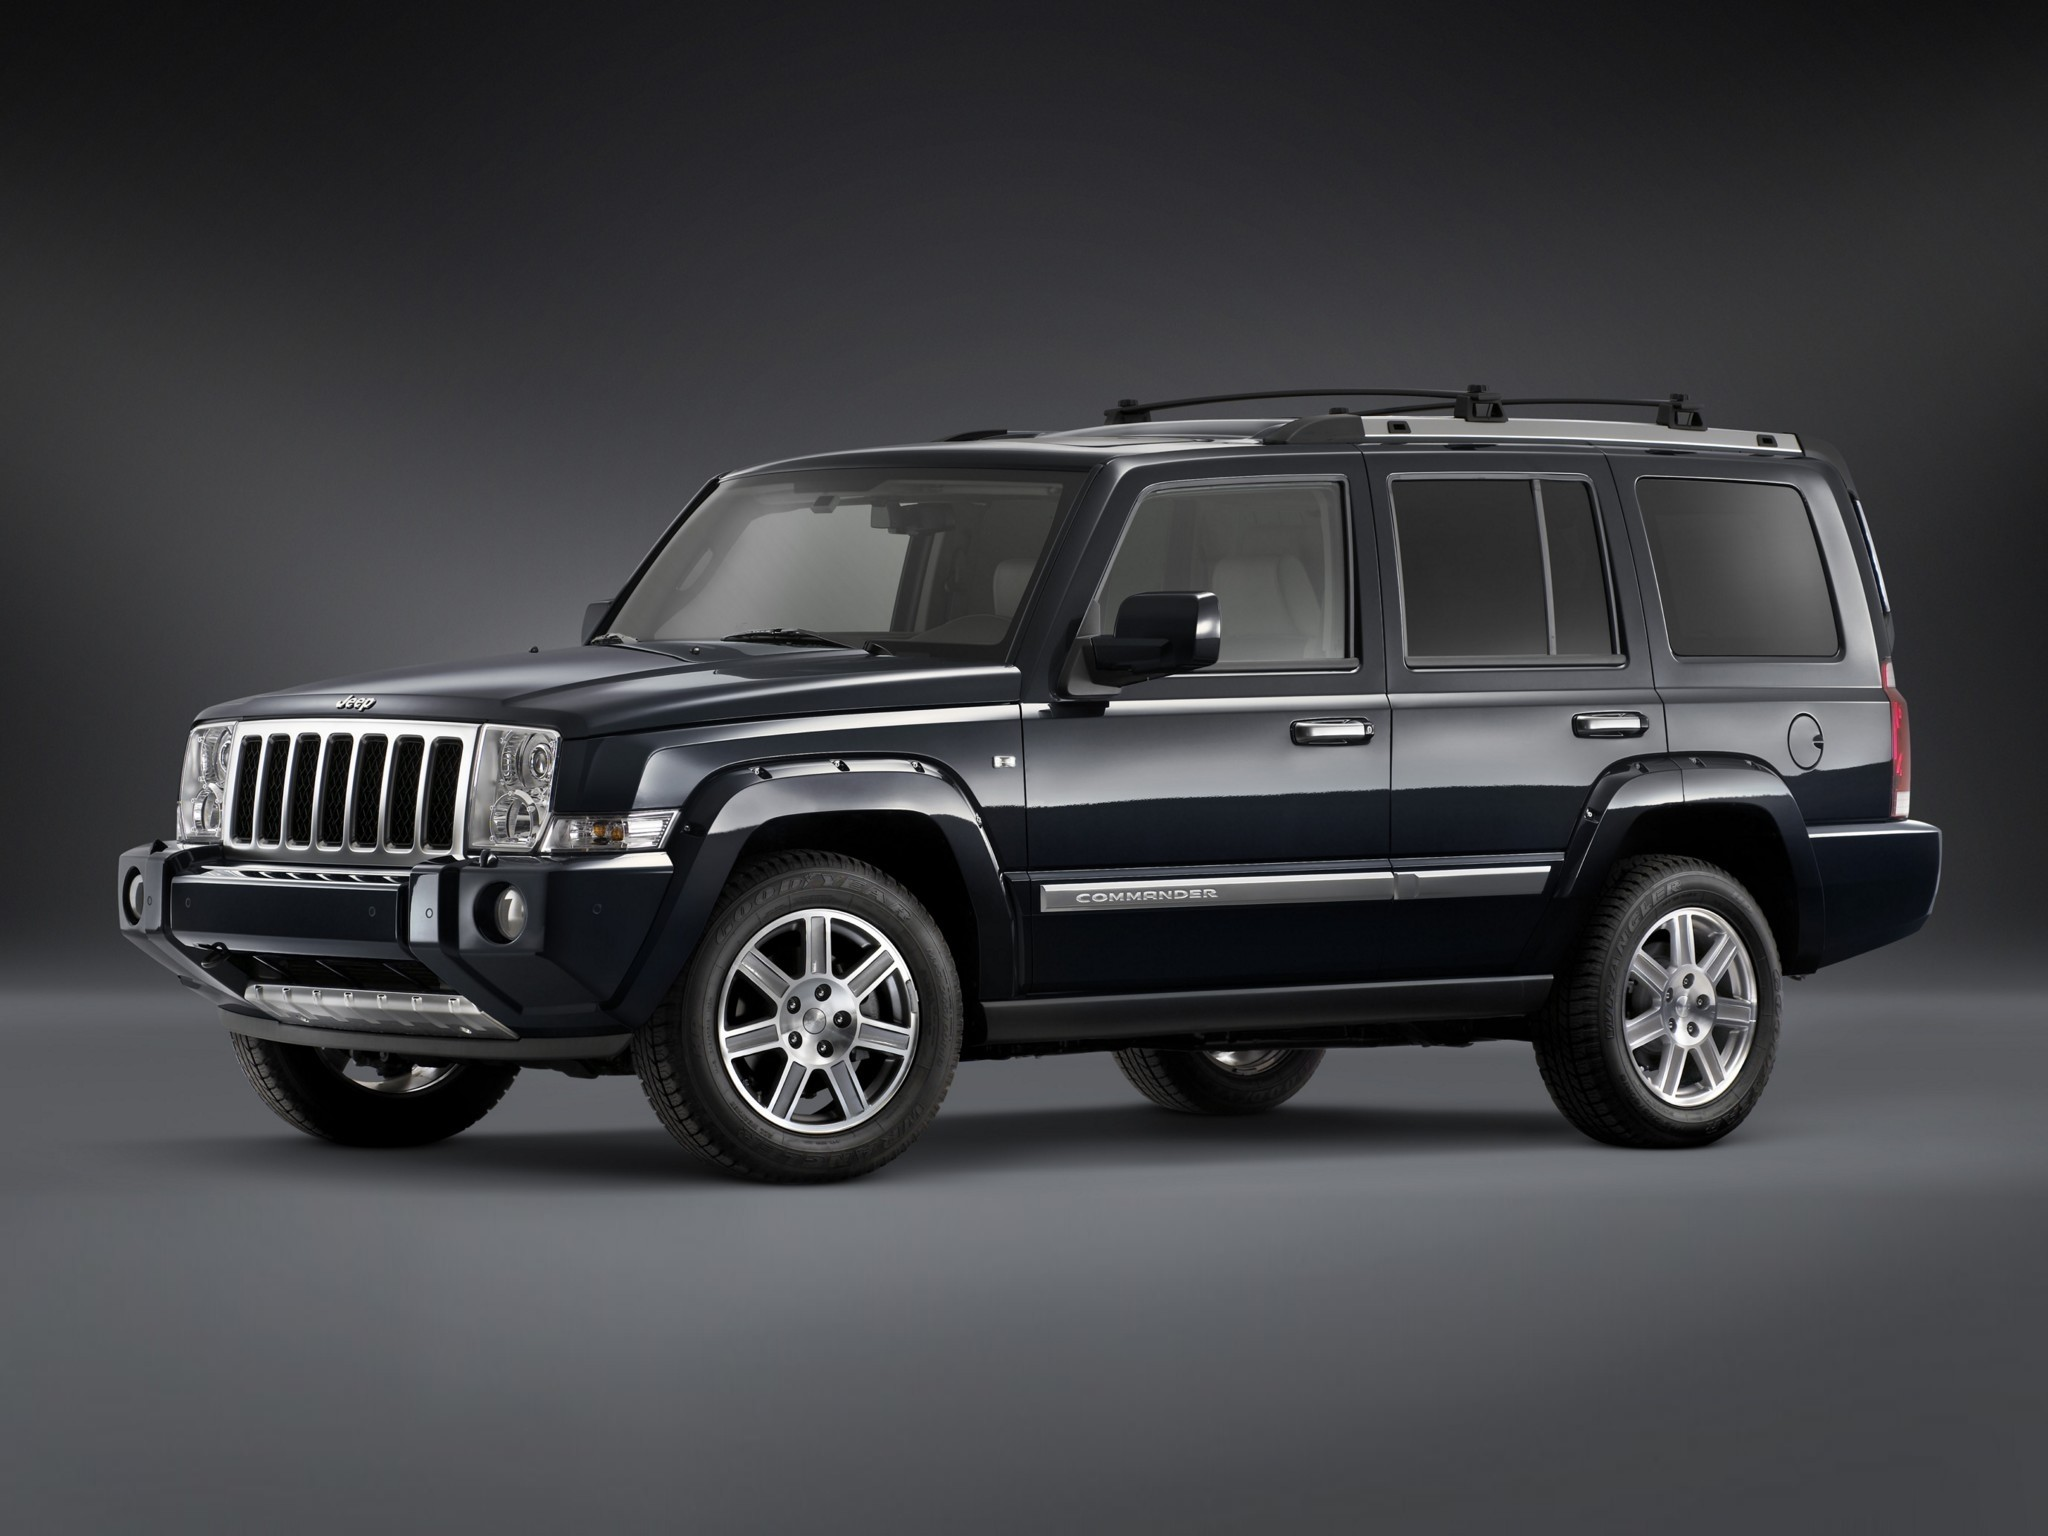 jeep commander specs 2008 2009 2010 autoevolution. Black Bedroom Furniture Sets. Home Design Ideas